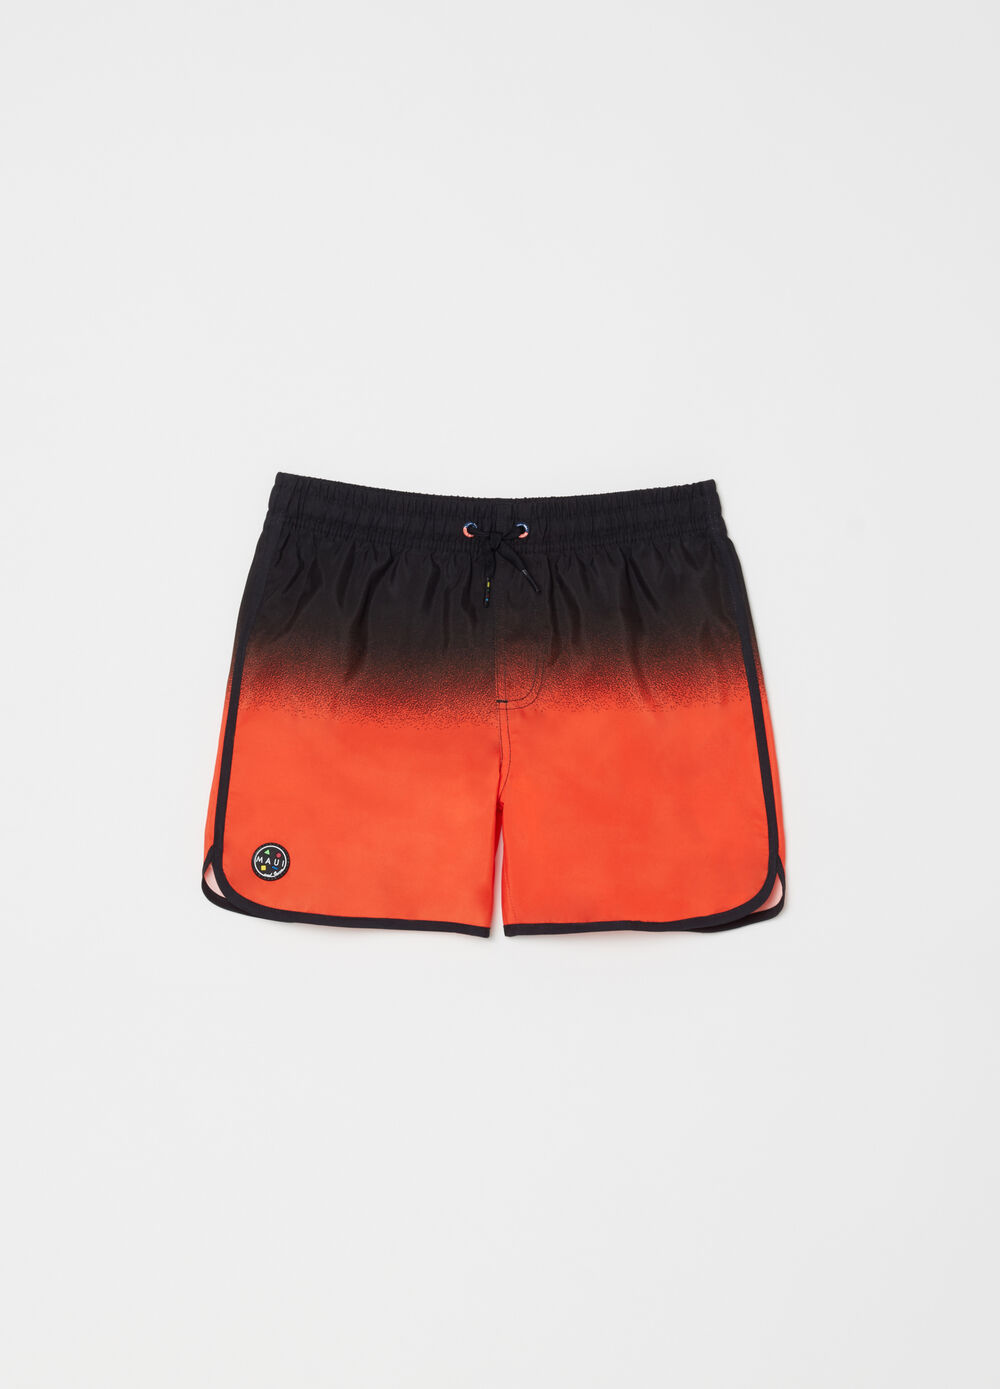 Degradé swim boxer shorts by Maui and Sons